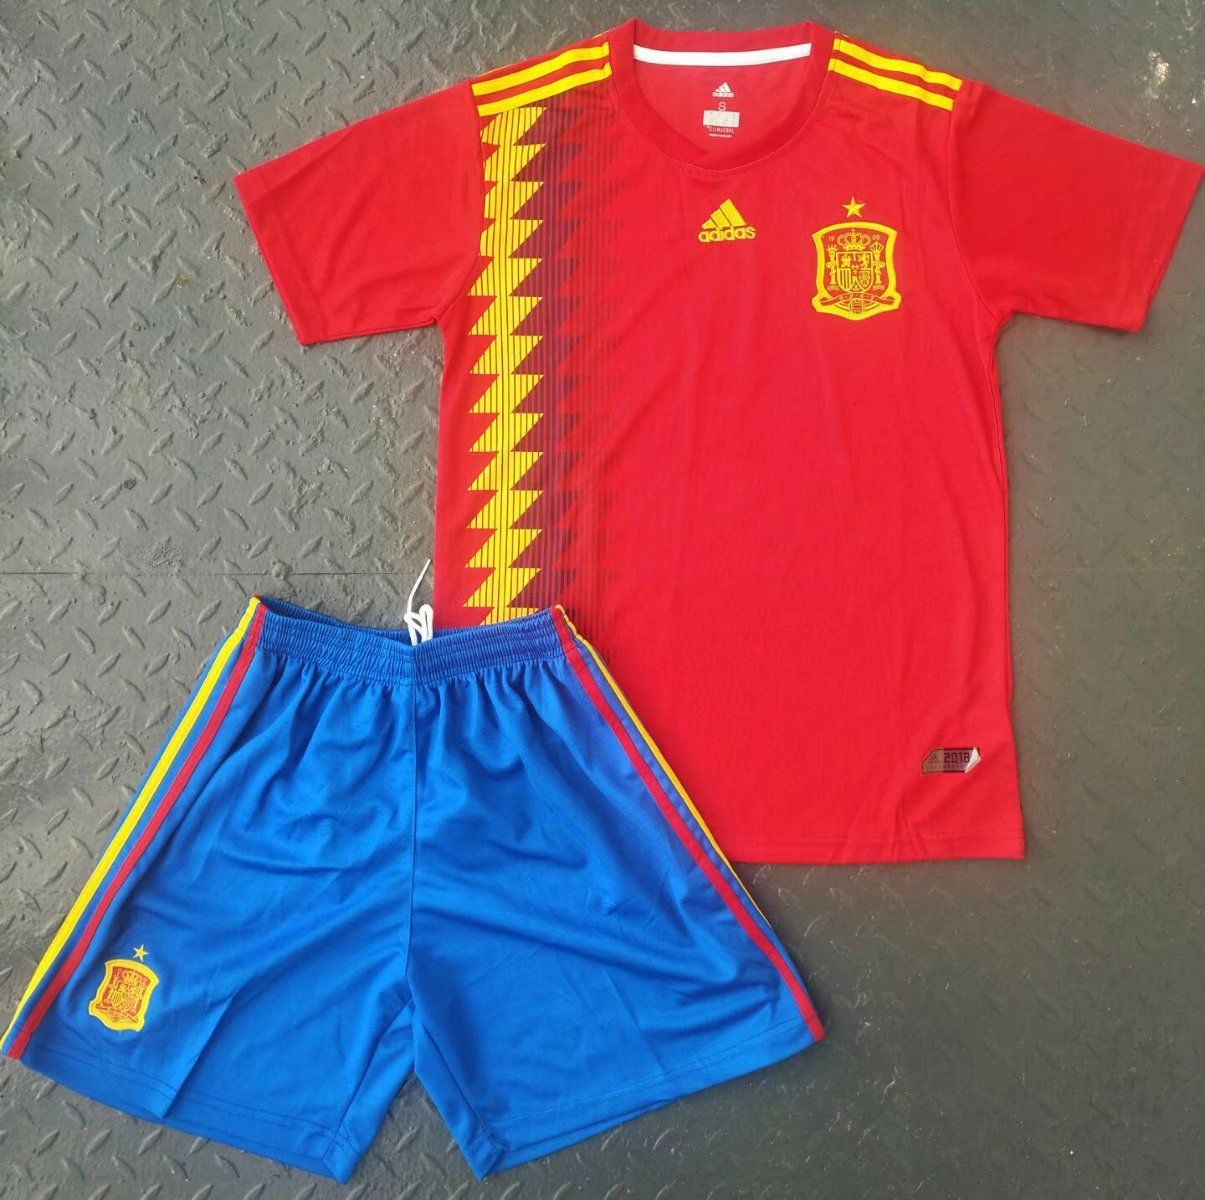 fb8972f19 11.99USD 2018 Spain World Cup Home Jersey Uniform Youth Red/Blue Football  National Team Kits Shirt+short